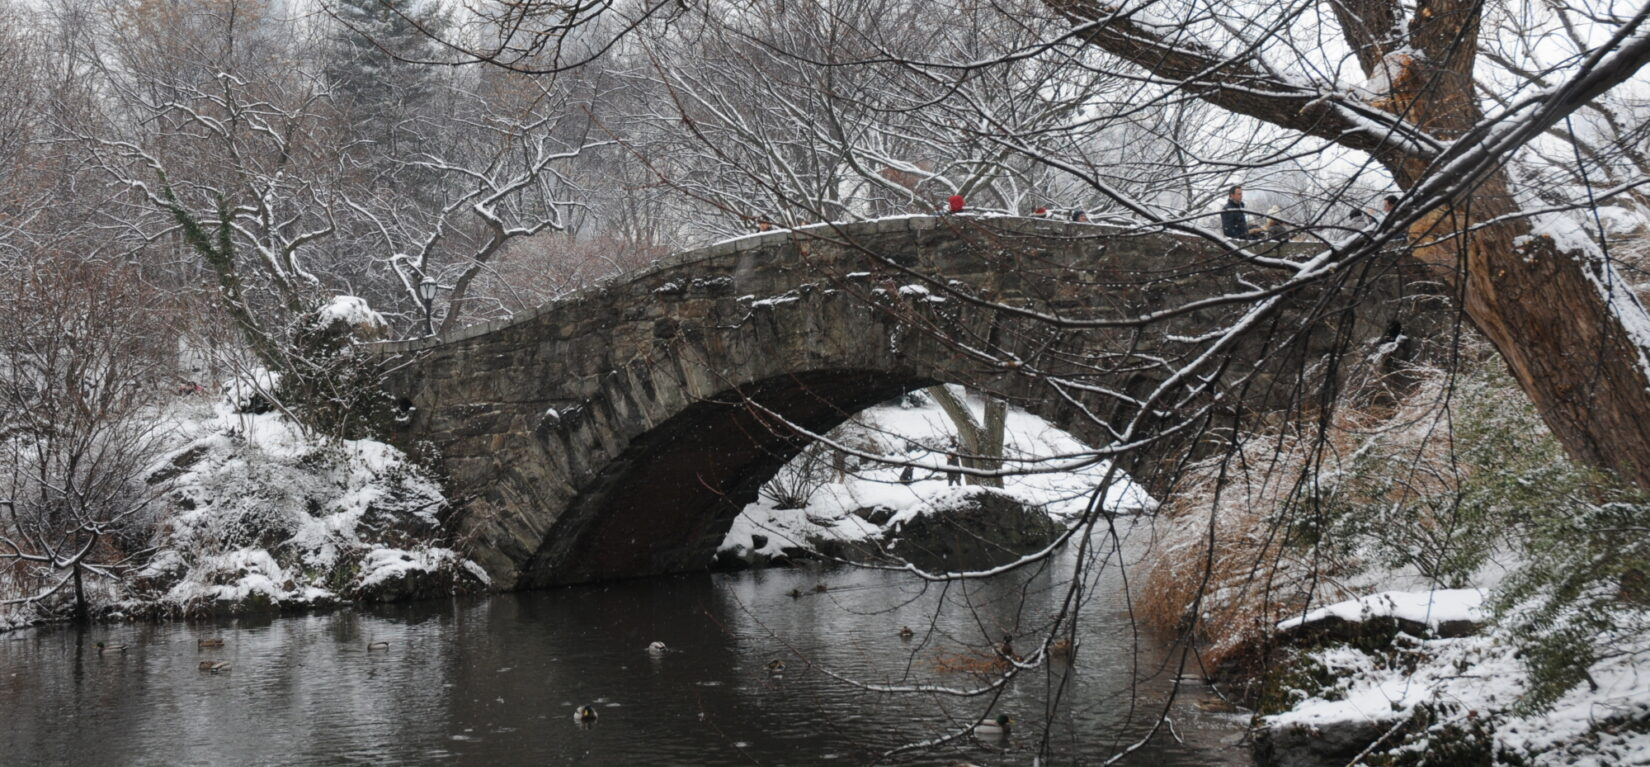 Park-goers cross the bridge spanning the Pond in winter